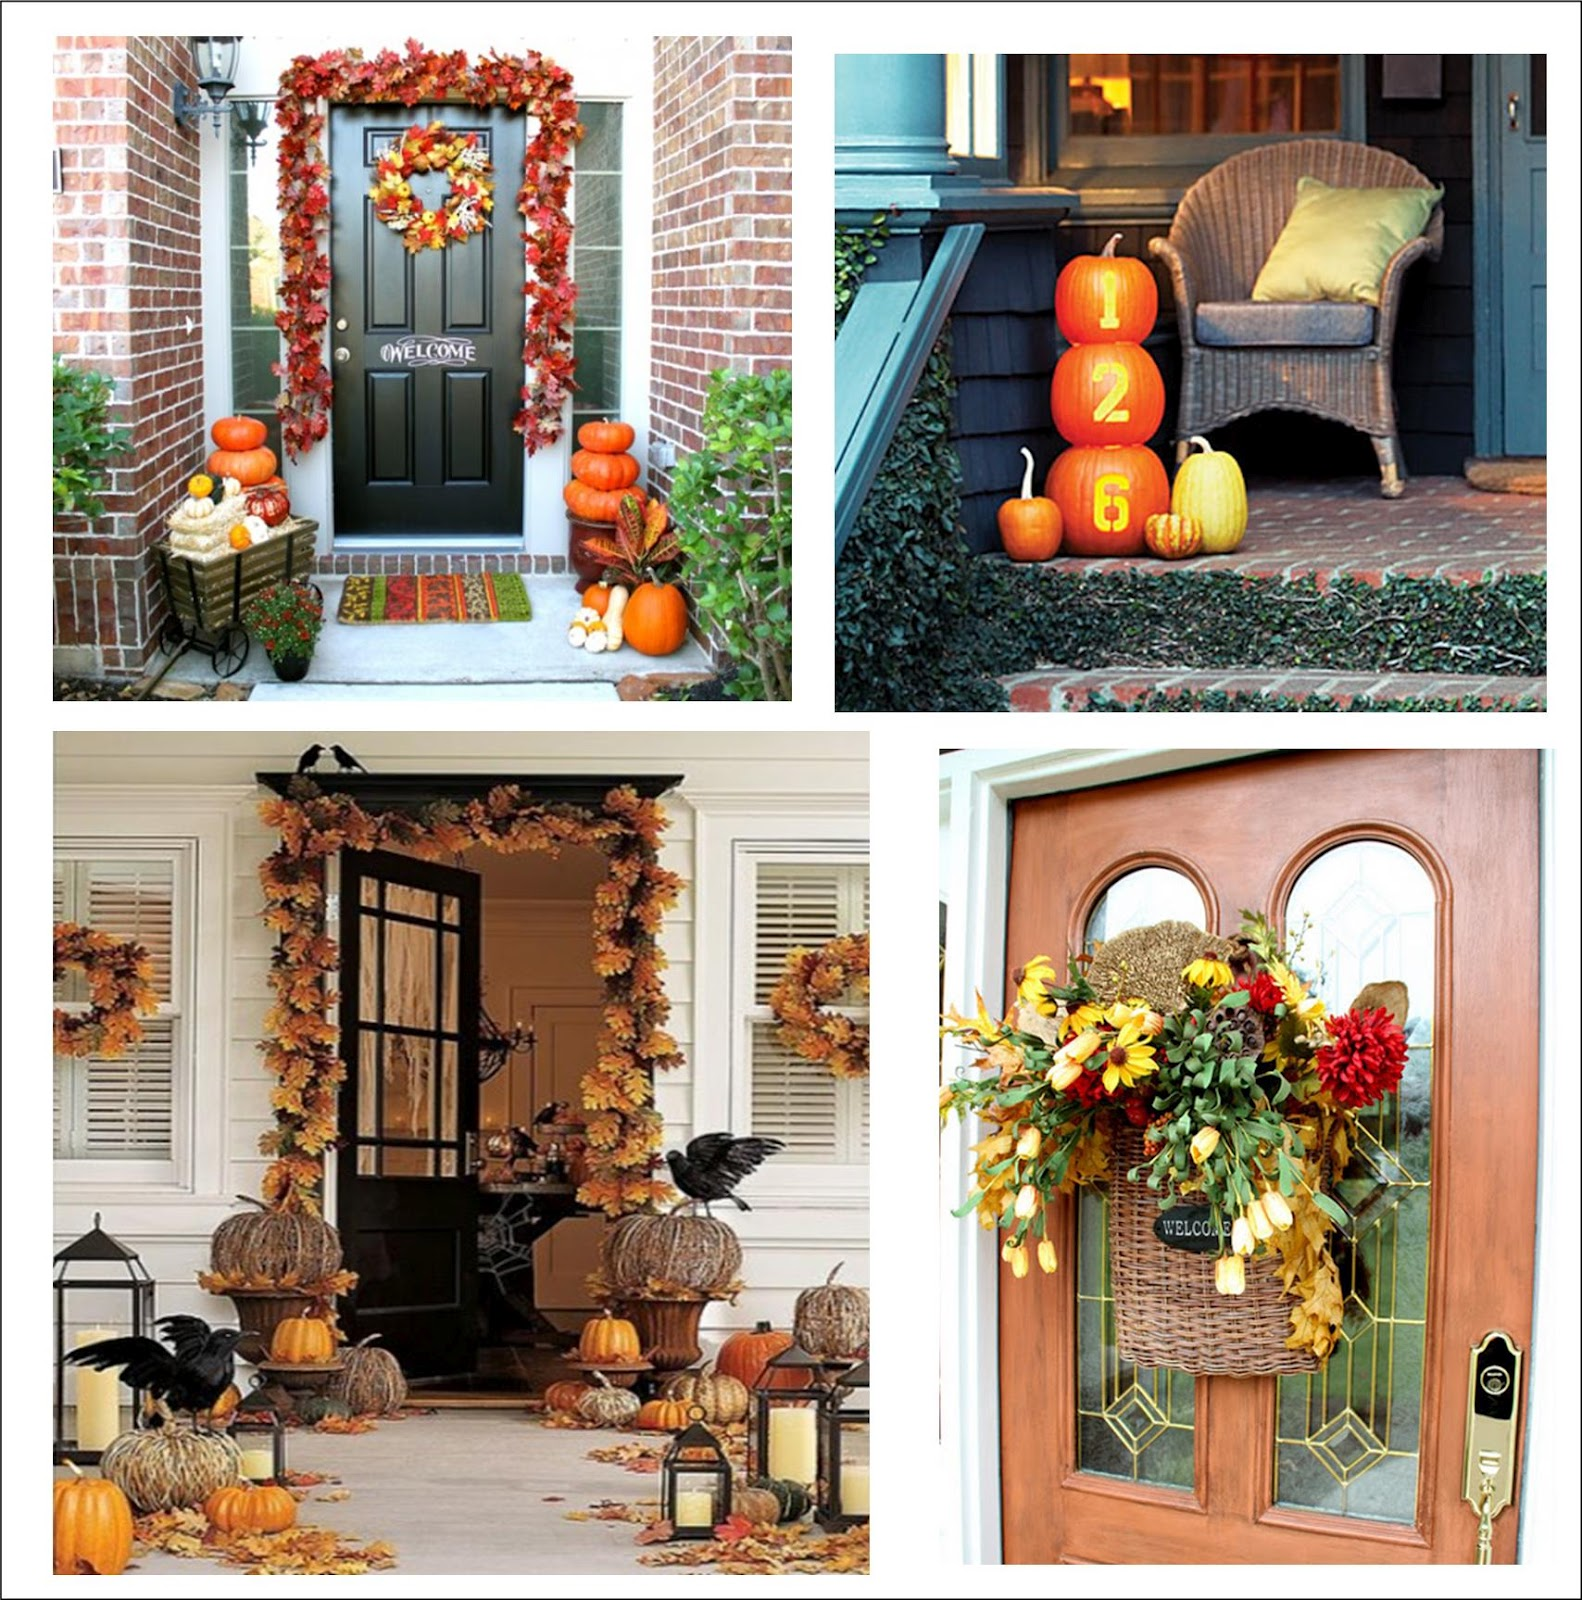 Home Design Ideas Outside: It's Written On The Wall: 90 Fall Porch Decorating Ideas